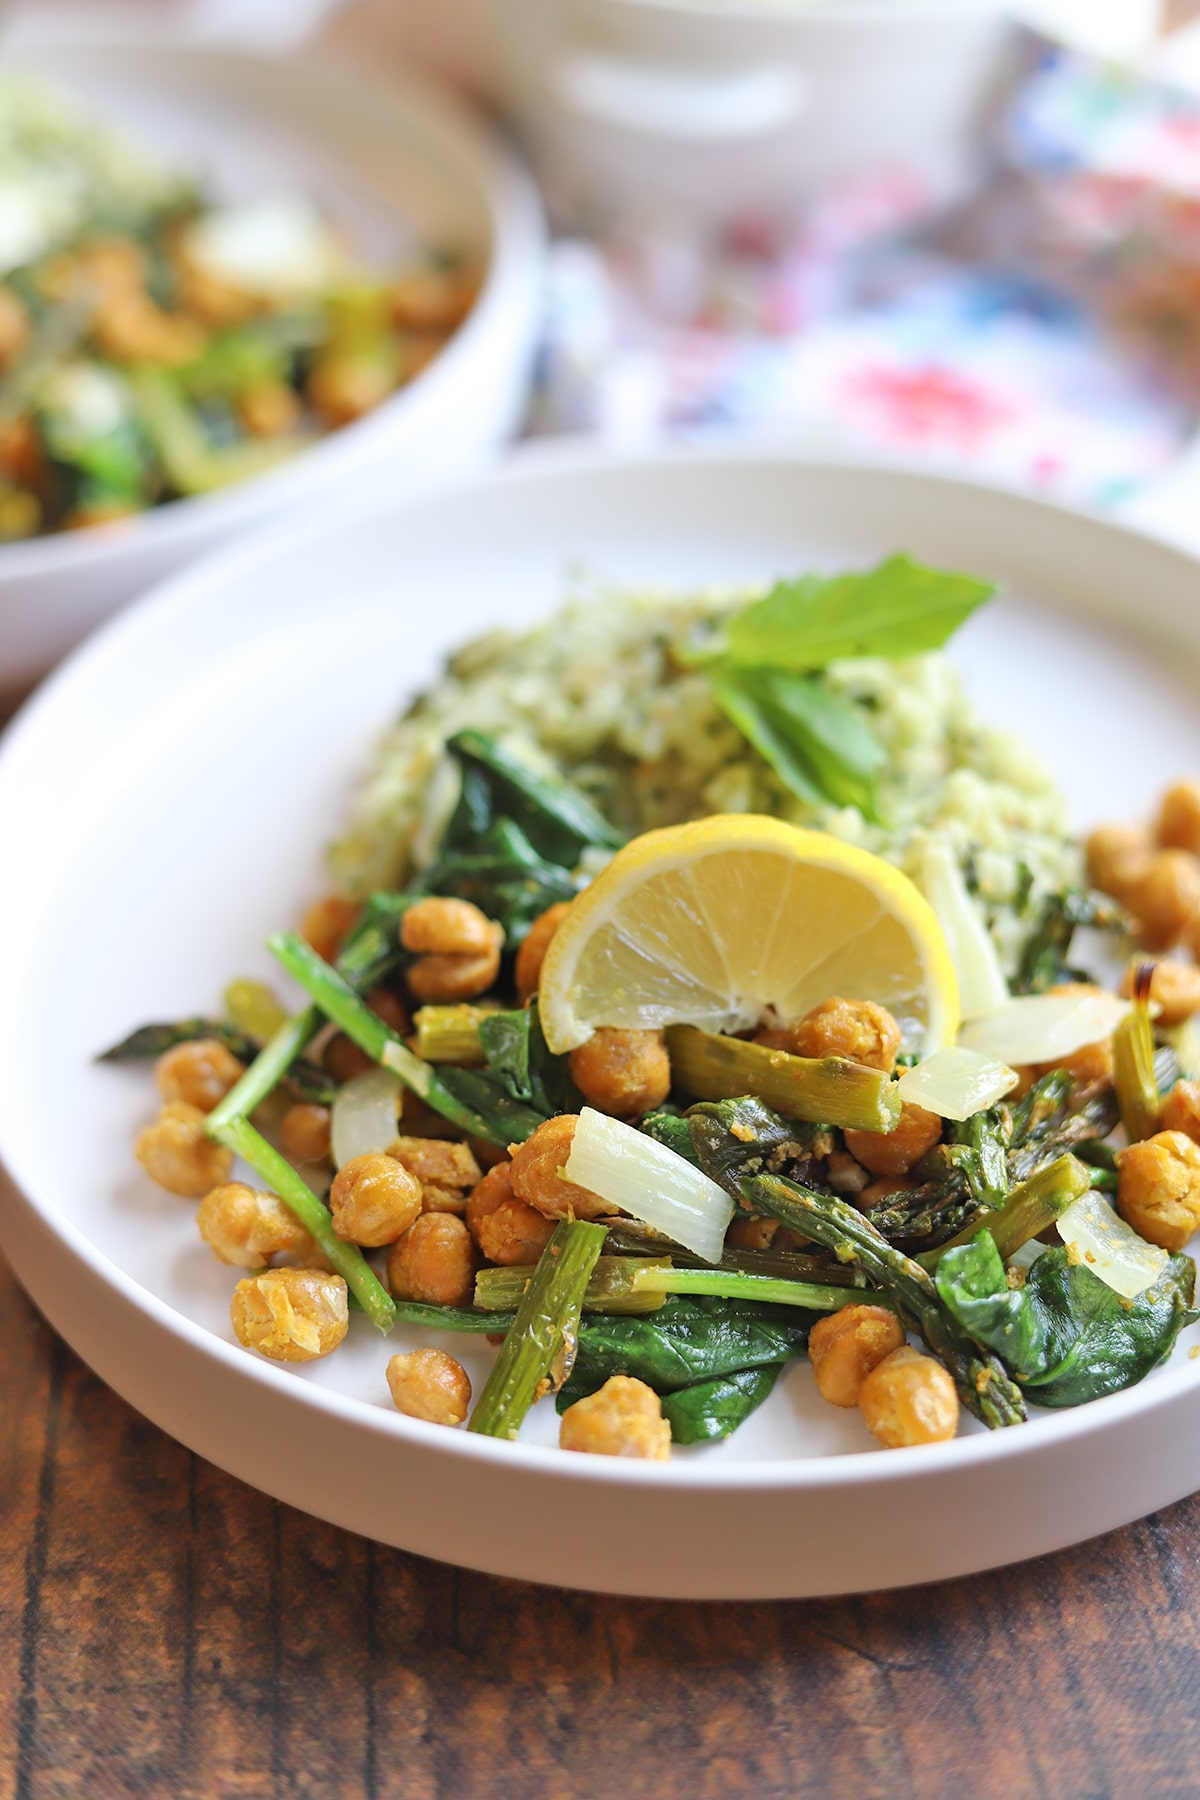 Plate with roasted asparagus, chickpeas, onions, and a lemon wedge.